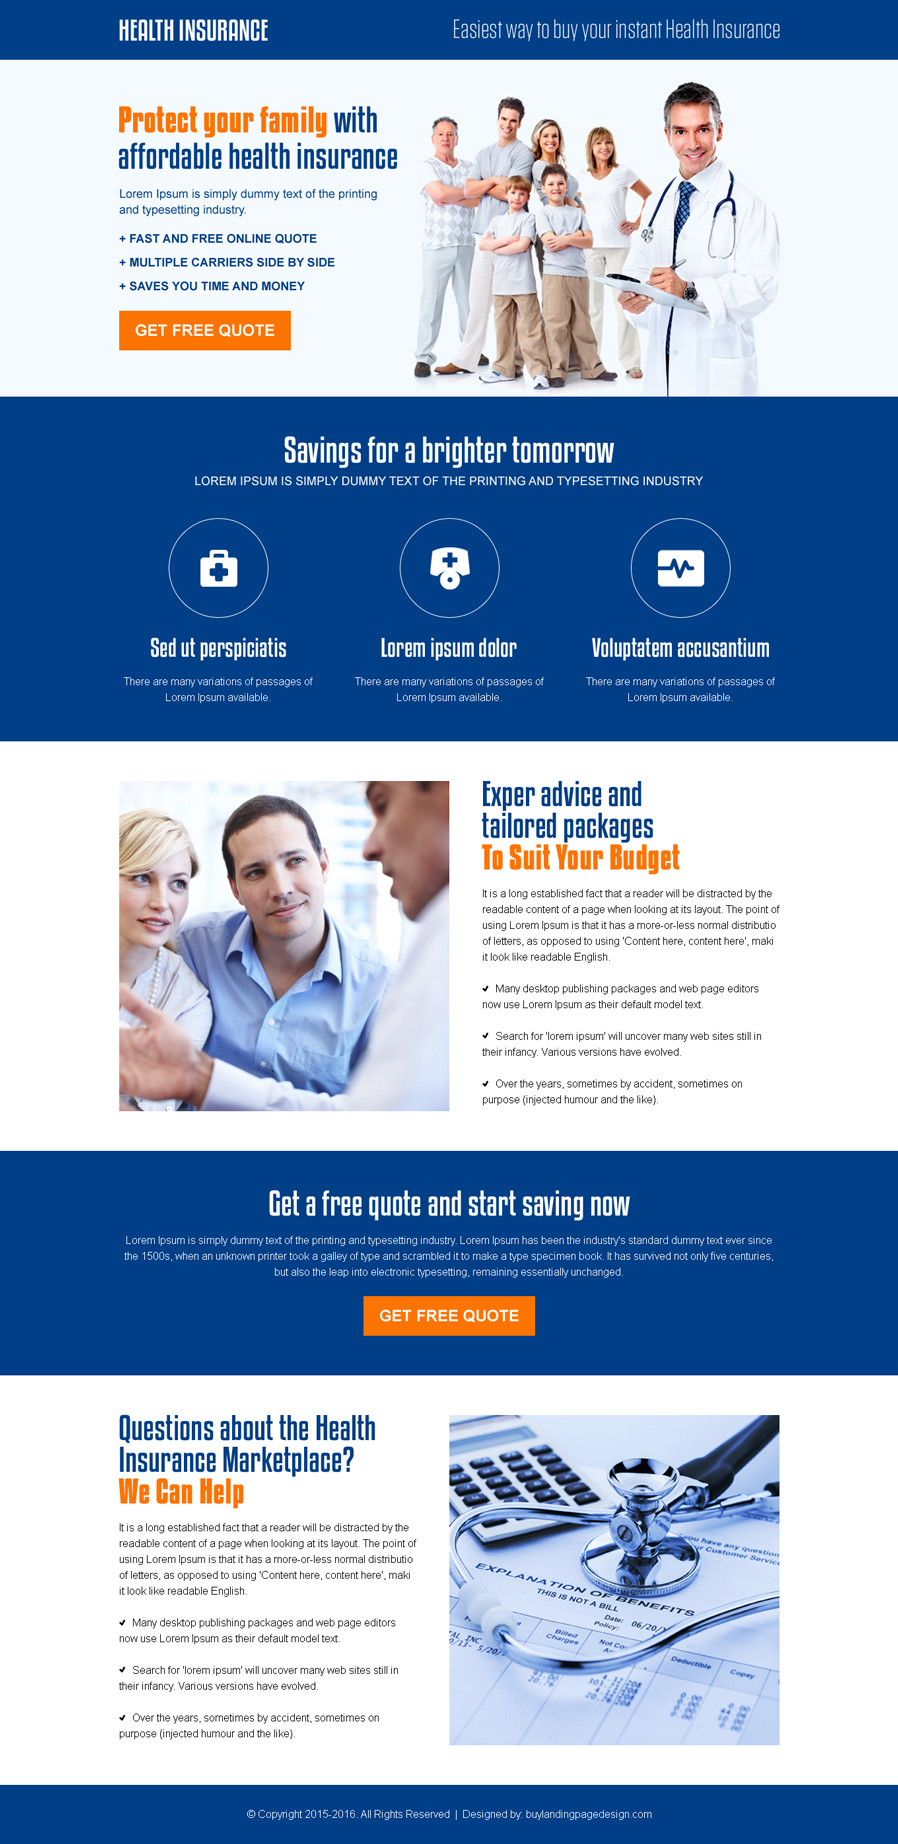 best-health-insurance-on-affordable-price-for-family-cta-responsive-landing-page-003